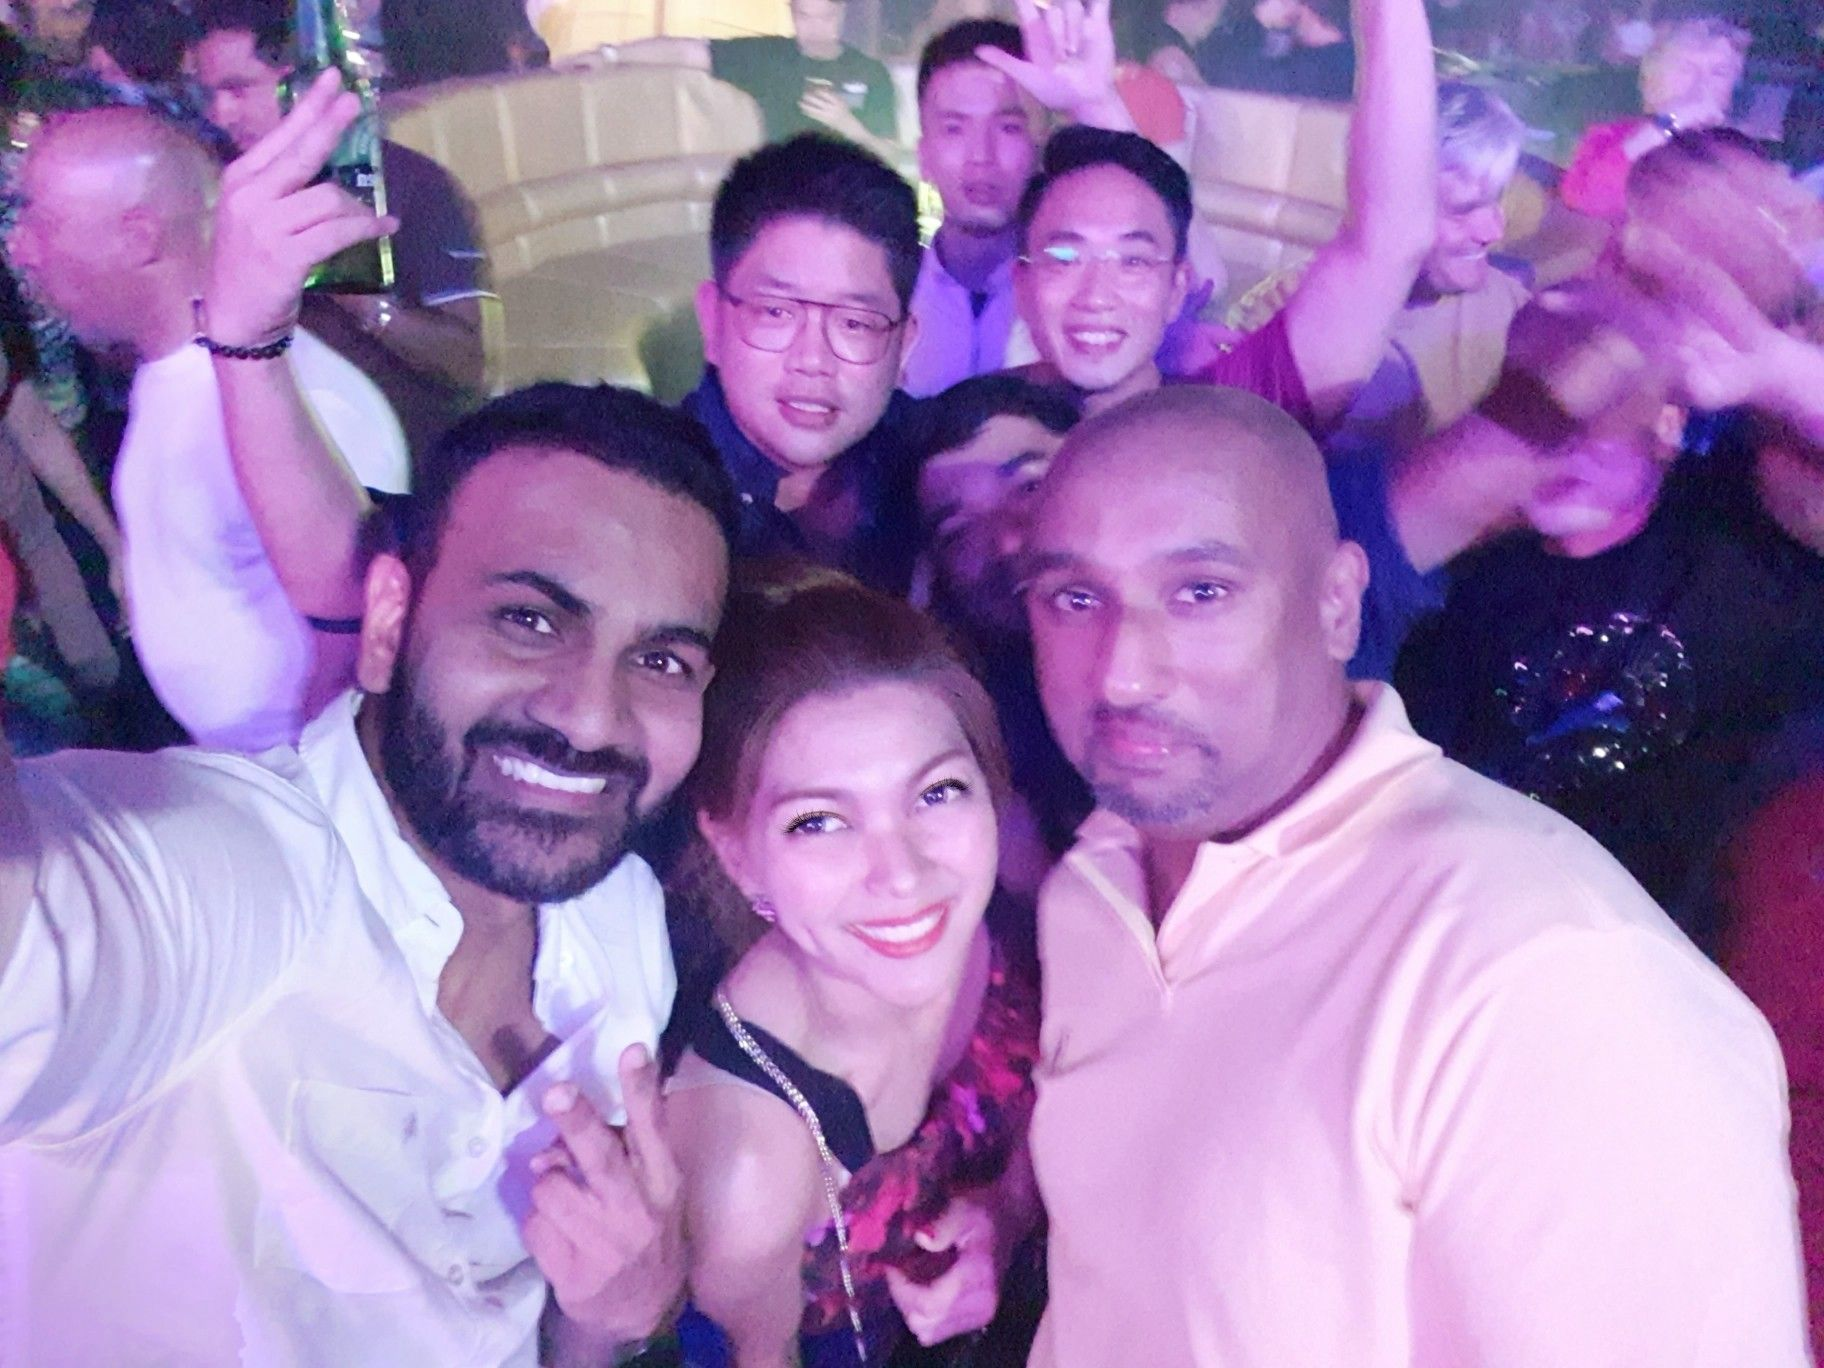 Good night from Club Cubic.🥳🥳 Another great networking time! 😂😂  Me? drinking water again as always 😊  #LanWork #FreightForwarder #TSLNaxco #TFS #TheFreightSummit #MacauTrip #LanInMacau #Macau #ClubCubic